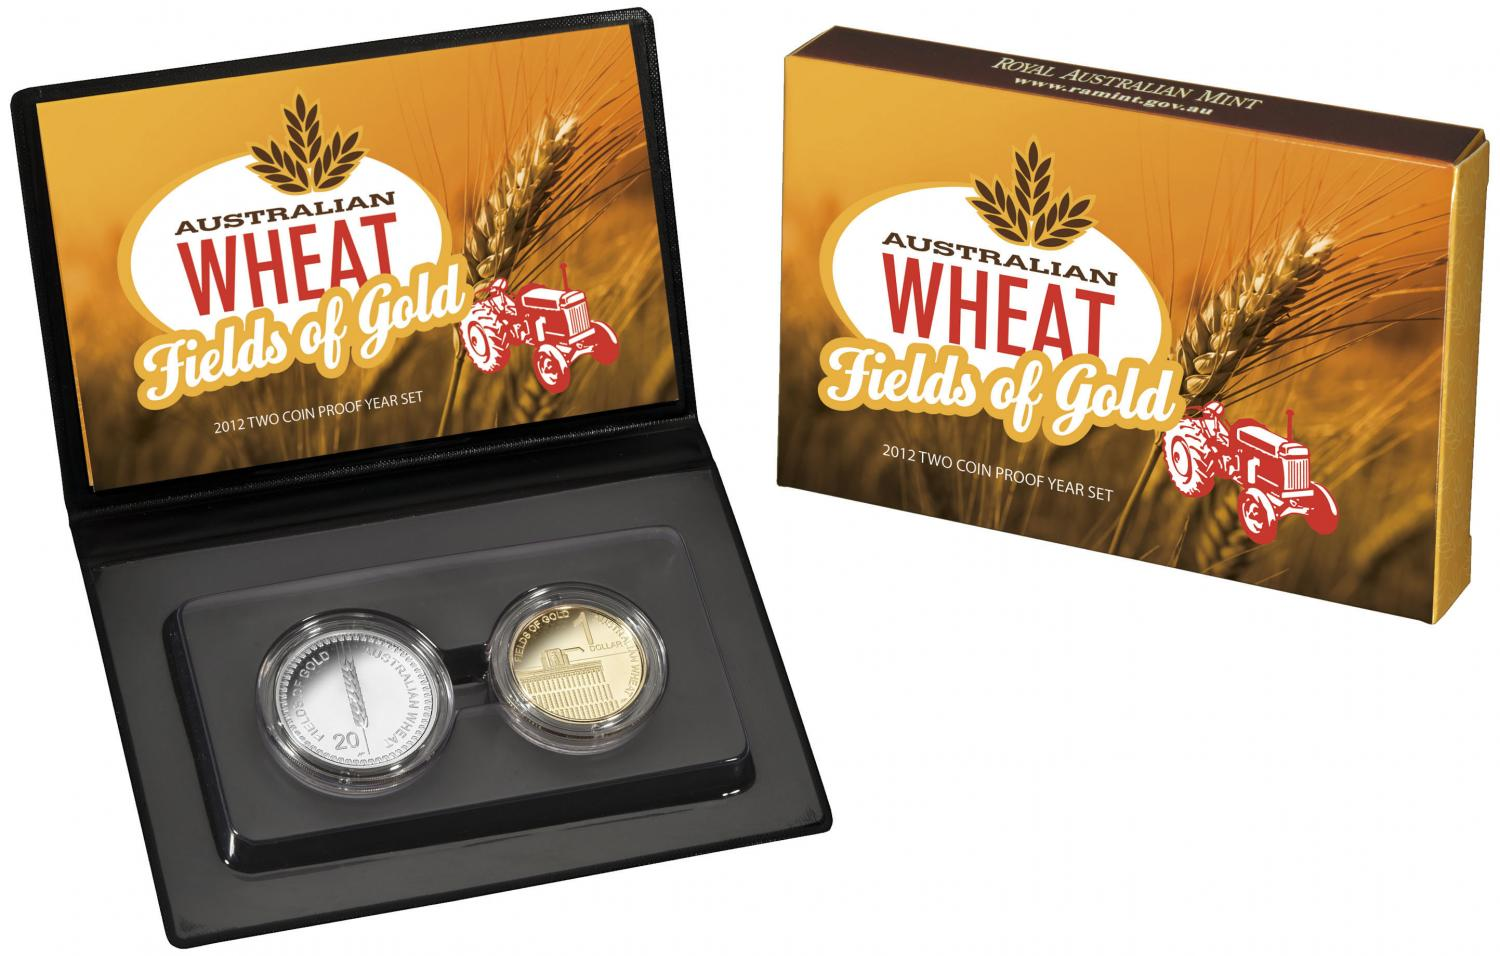 Thumbnail for 2012 Two Coin Proof Set - Australian Wheat Fields of Gold